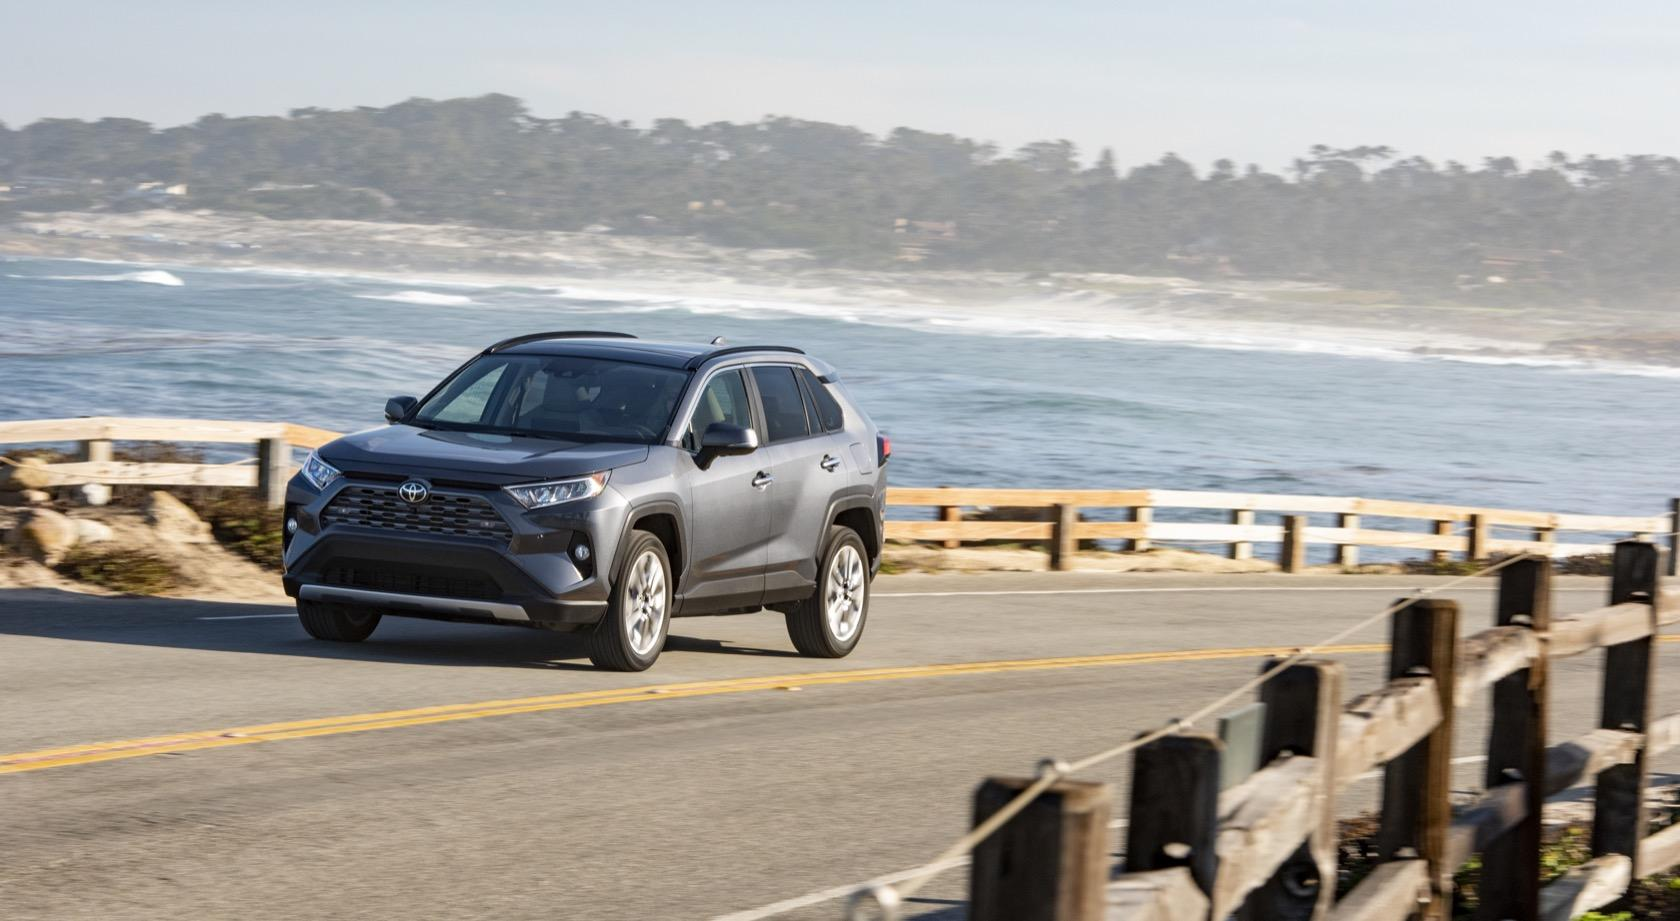 2019 Toyota RAV4 first drive review: Compact SUV makes huge